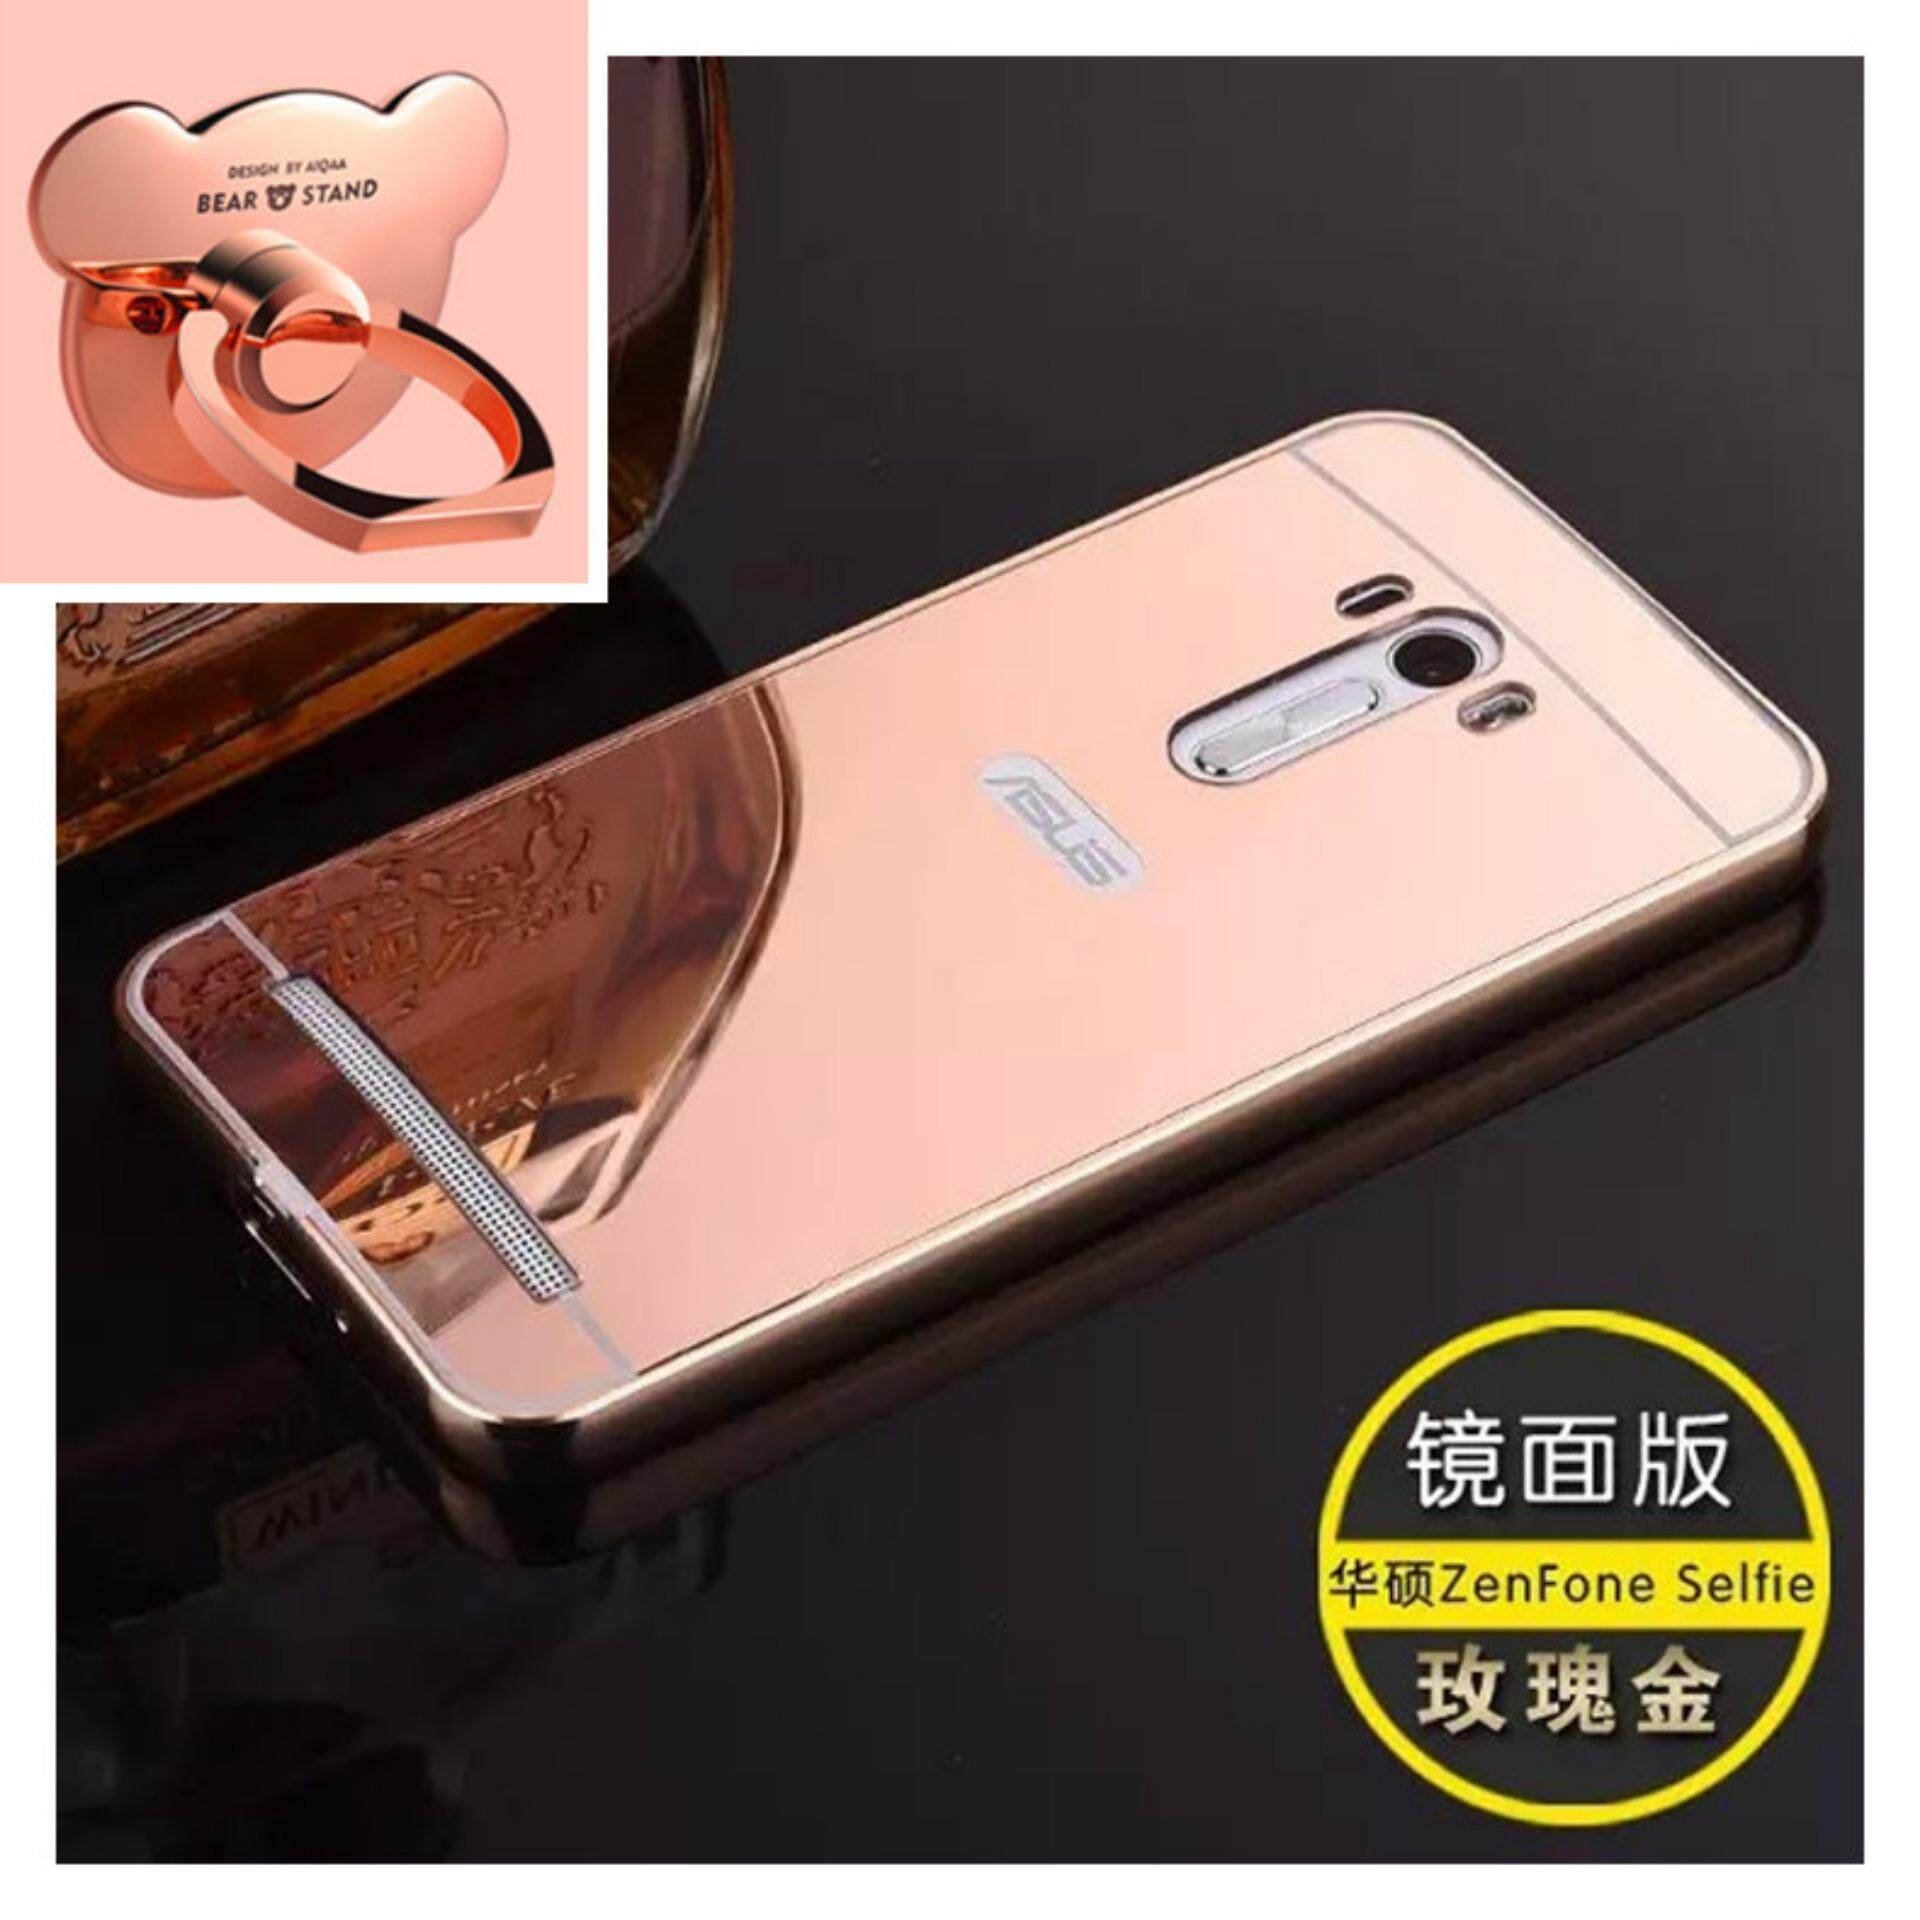 Case Aluminium Bumper Mirror For Asus Zenfone 2 55inch Hitam Gratis Alumunium 55 Selfie Zd551kl Metal Frame With Bear Ring Phone